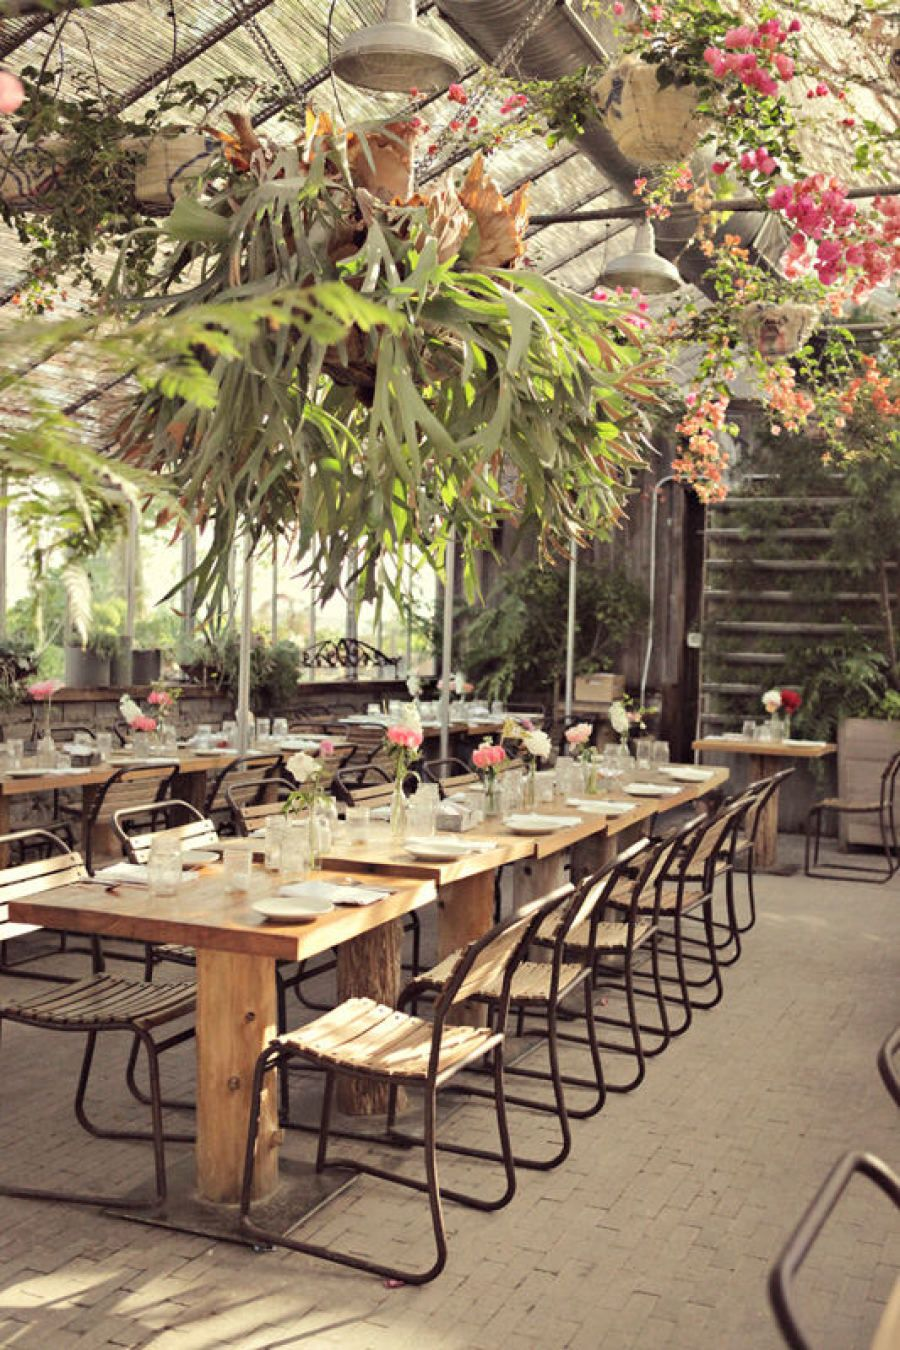 Philadelphia Wedding by Krystal Mann is part of Greenhouse restaurant - Terrain at Styers is a a garden that foodie dreams are made of and quite possibly the coolest spot on the planet for a wedding extravaganza  And as if the venue weren't enough to send us reeling into